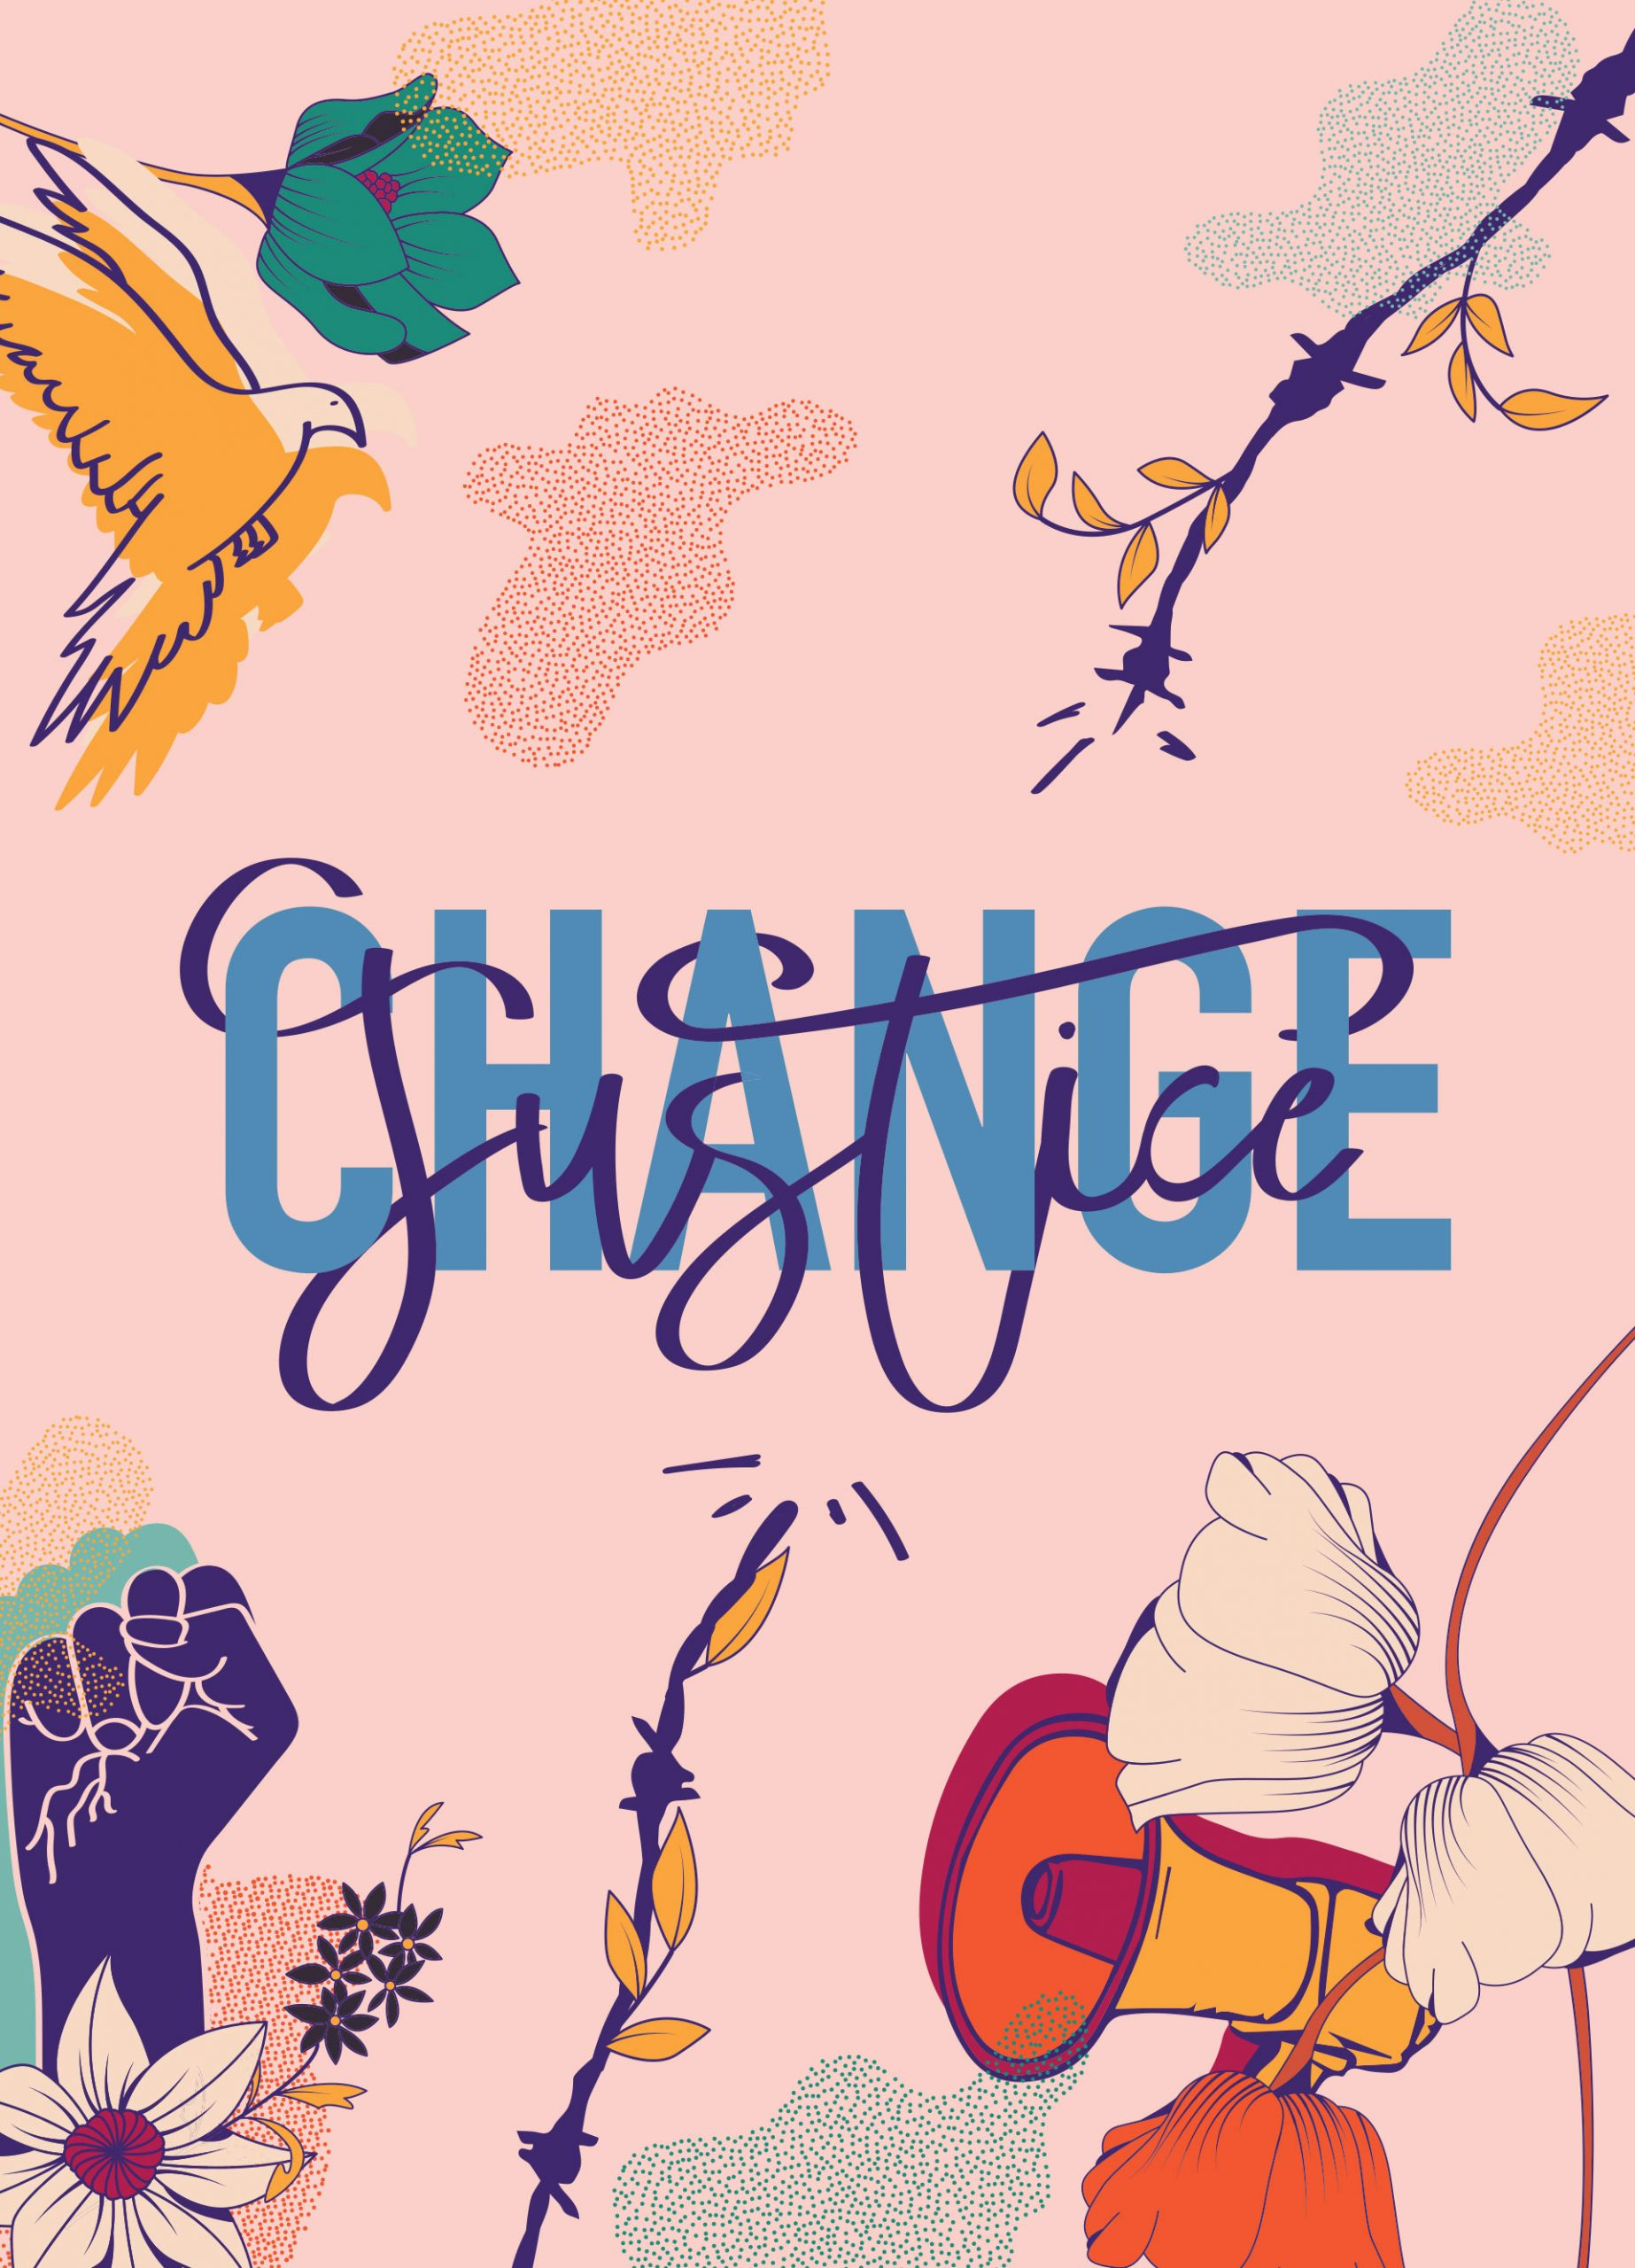 """'Change Justice'. Image is typography of """"change justice"""" intertwined, a dove flying with flowers, barbered wire being broken, a fist up with flowers, and a megaphone with flowers"""